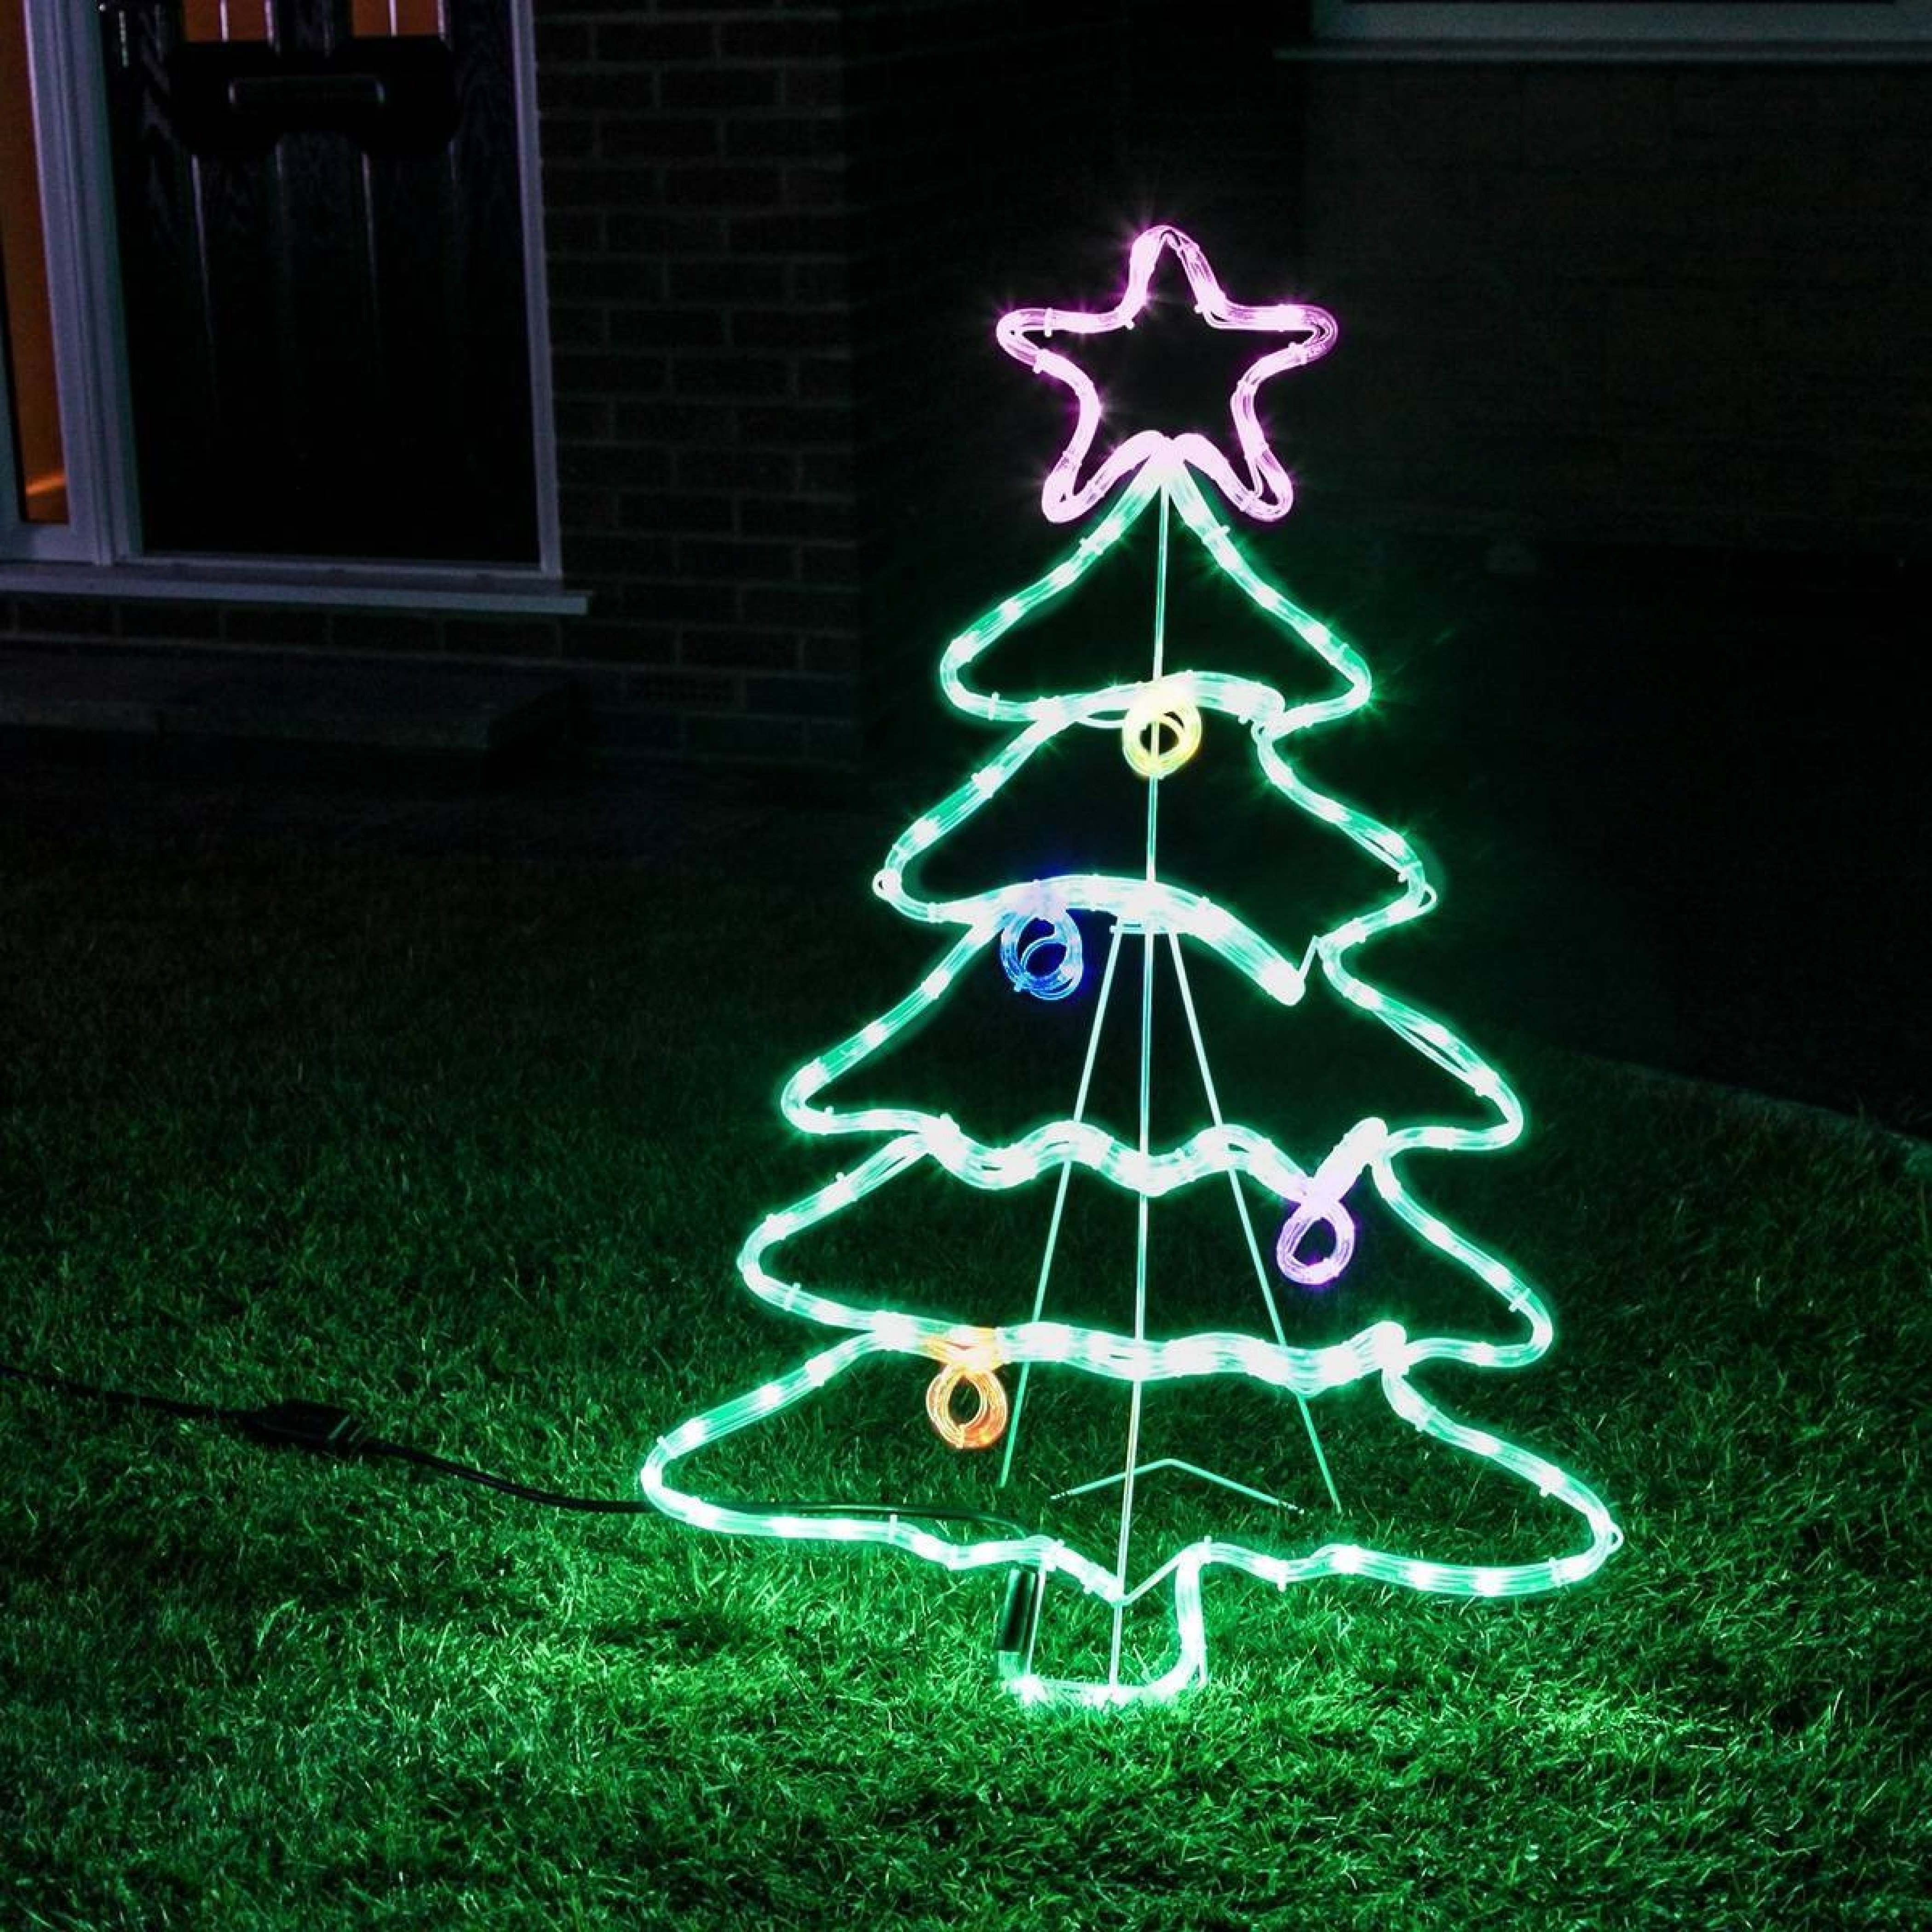 Newest Outdoor Rope Light Christmas Tree Motif, Multi Coloured Twinkling Leds Within Outdoor Christmas Rope Lanterns (View 10 of 20)